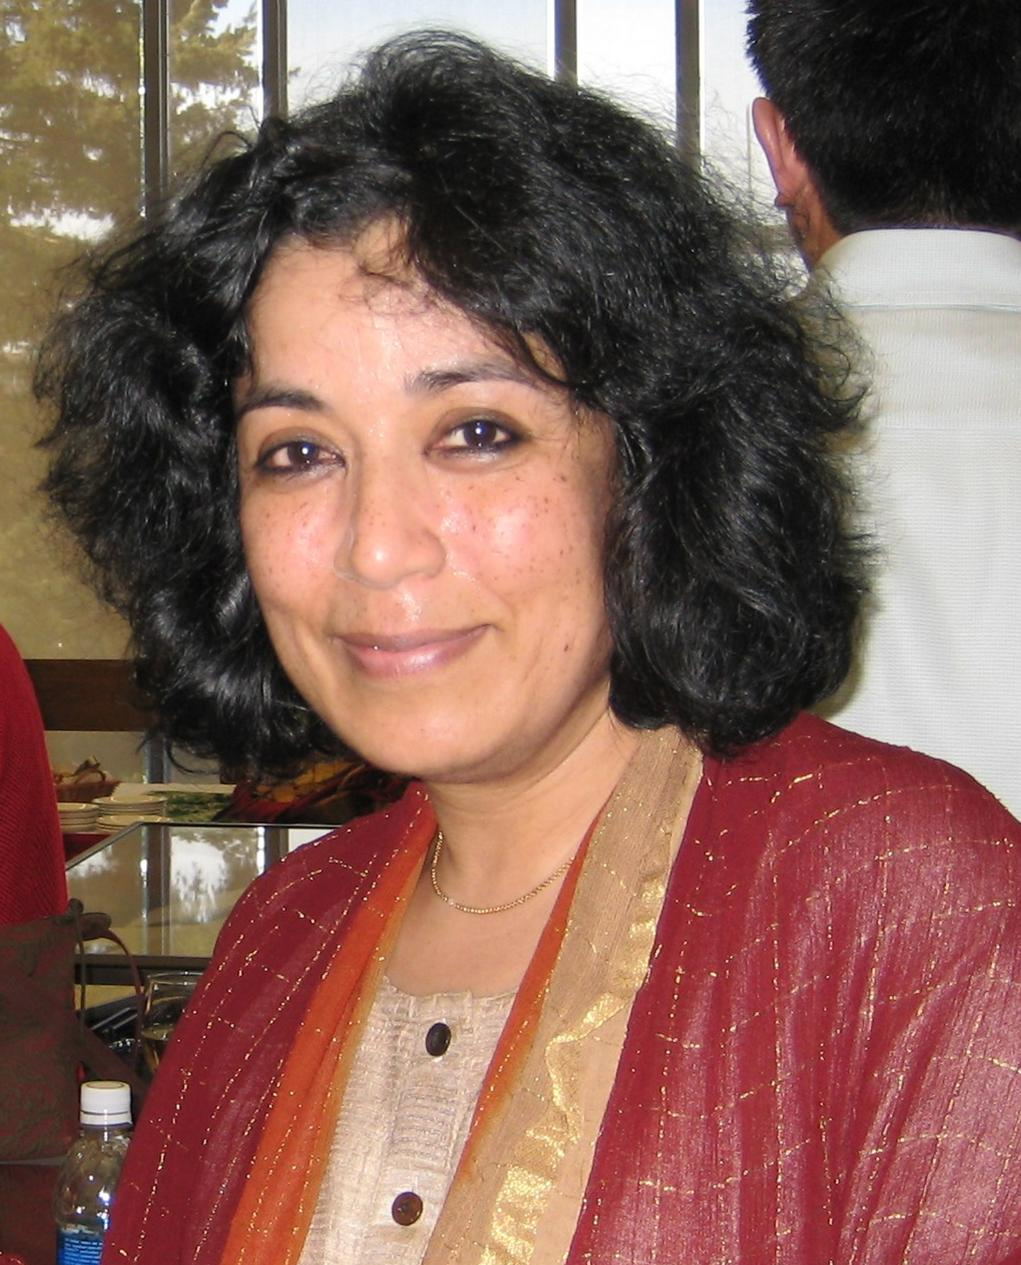 Congratulations to Indrani Chatterjee on Prestigious Book Award!